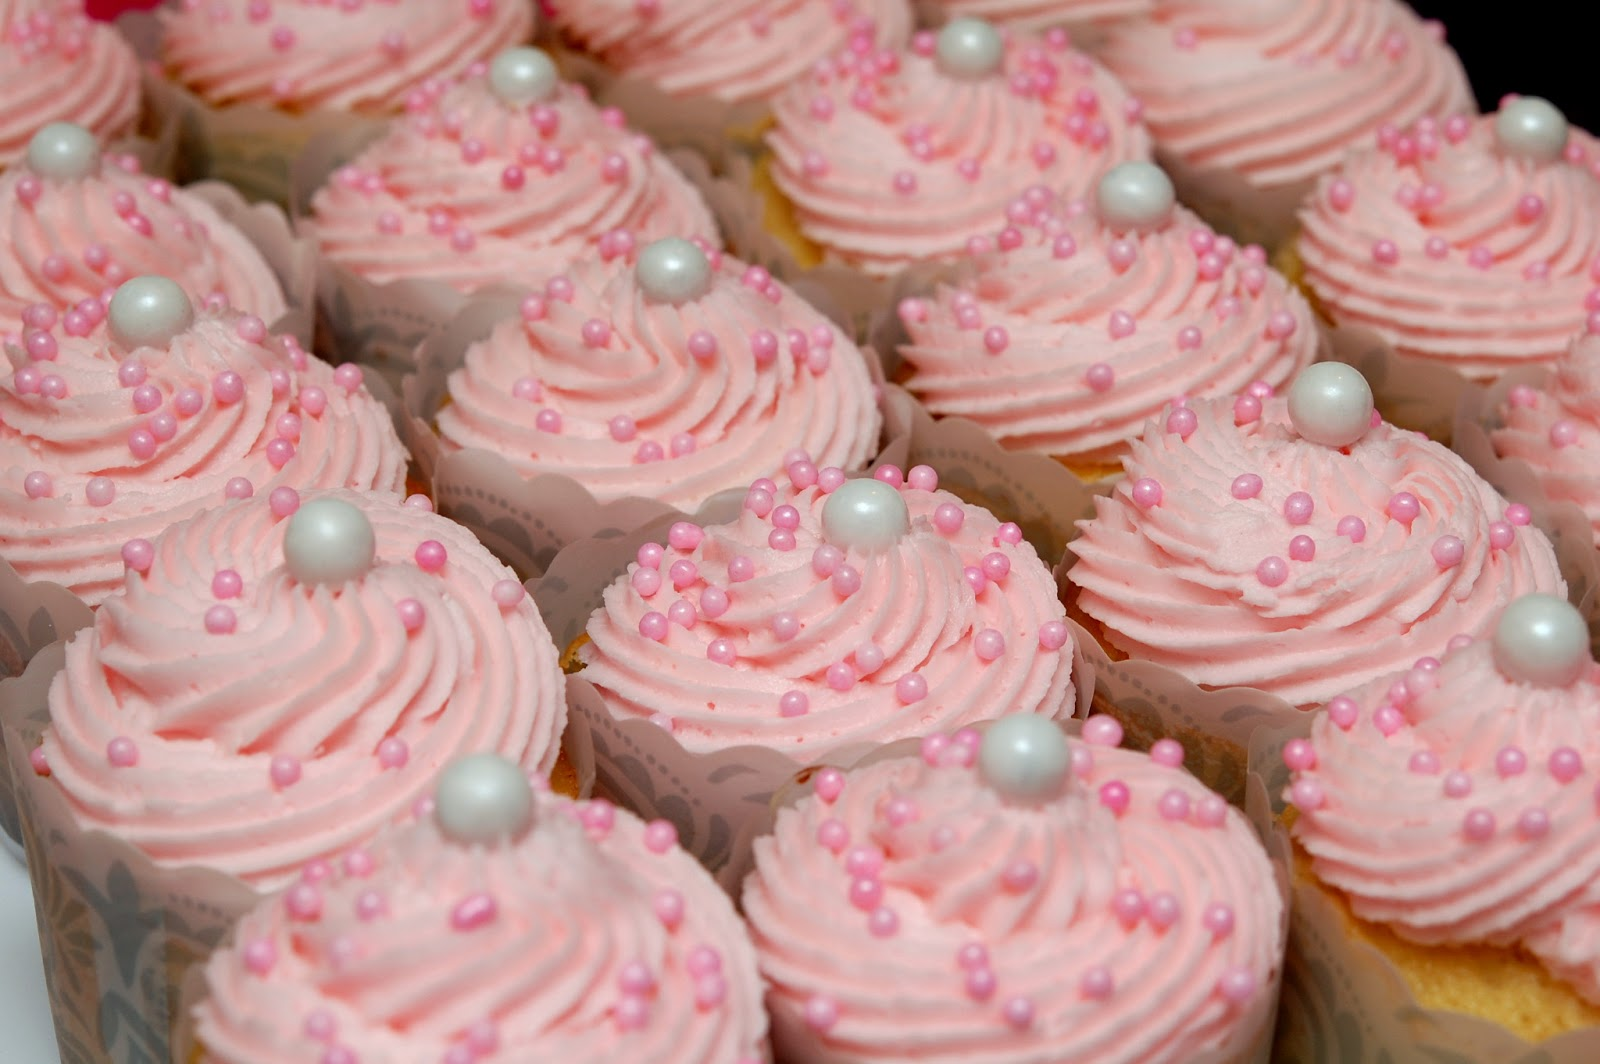 Cupcake Decorating Ideas For A Girl : SCRUMPTIOUS VANILLA CUPCAKES FOR A SWEET BIRTHDAY GIRL ...